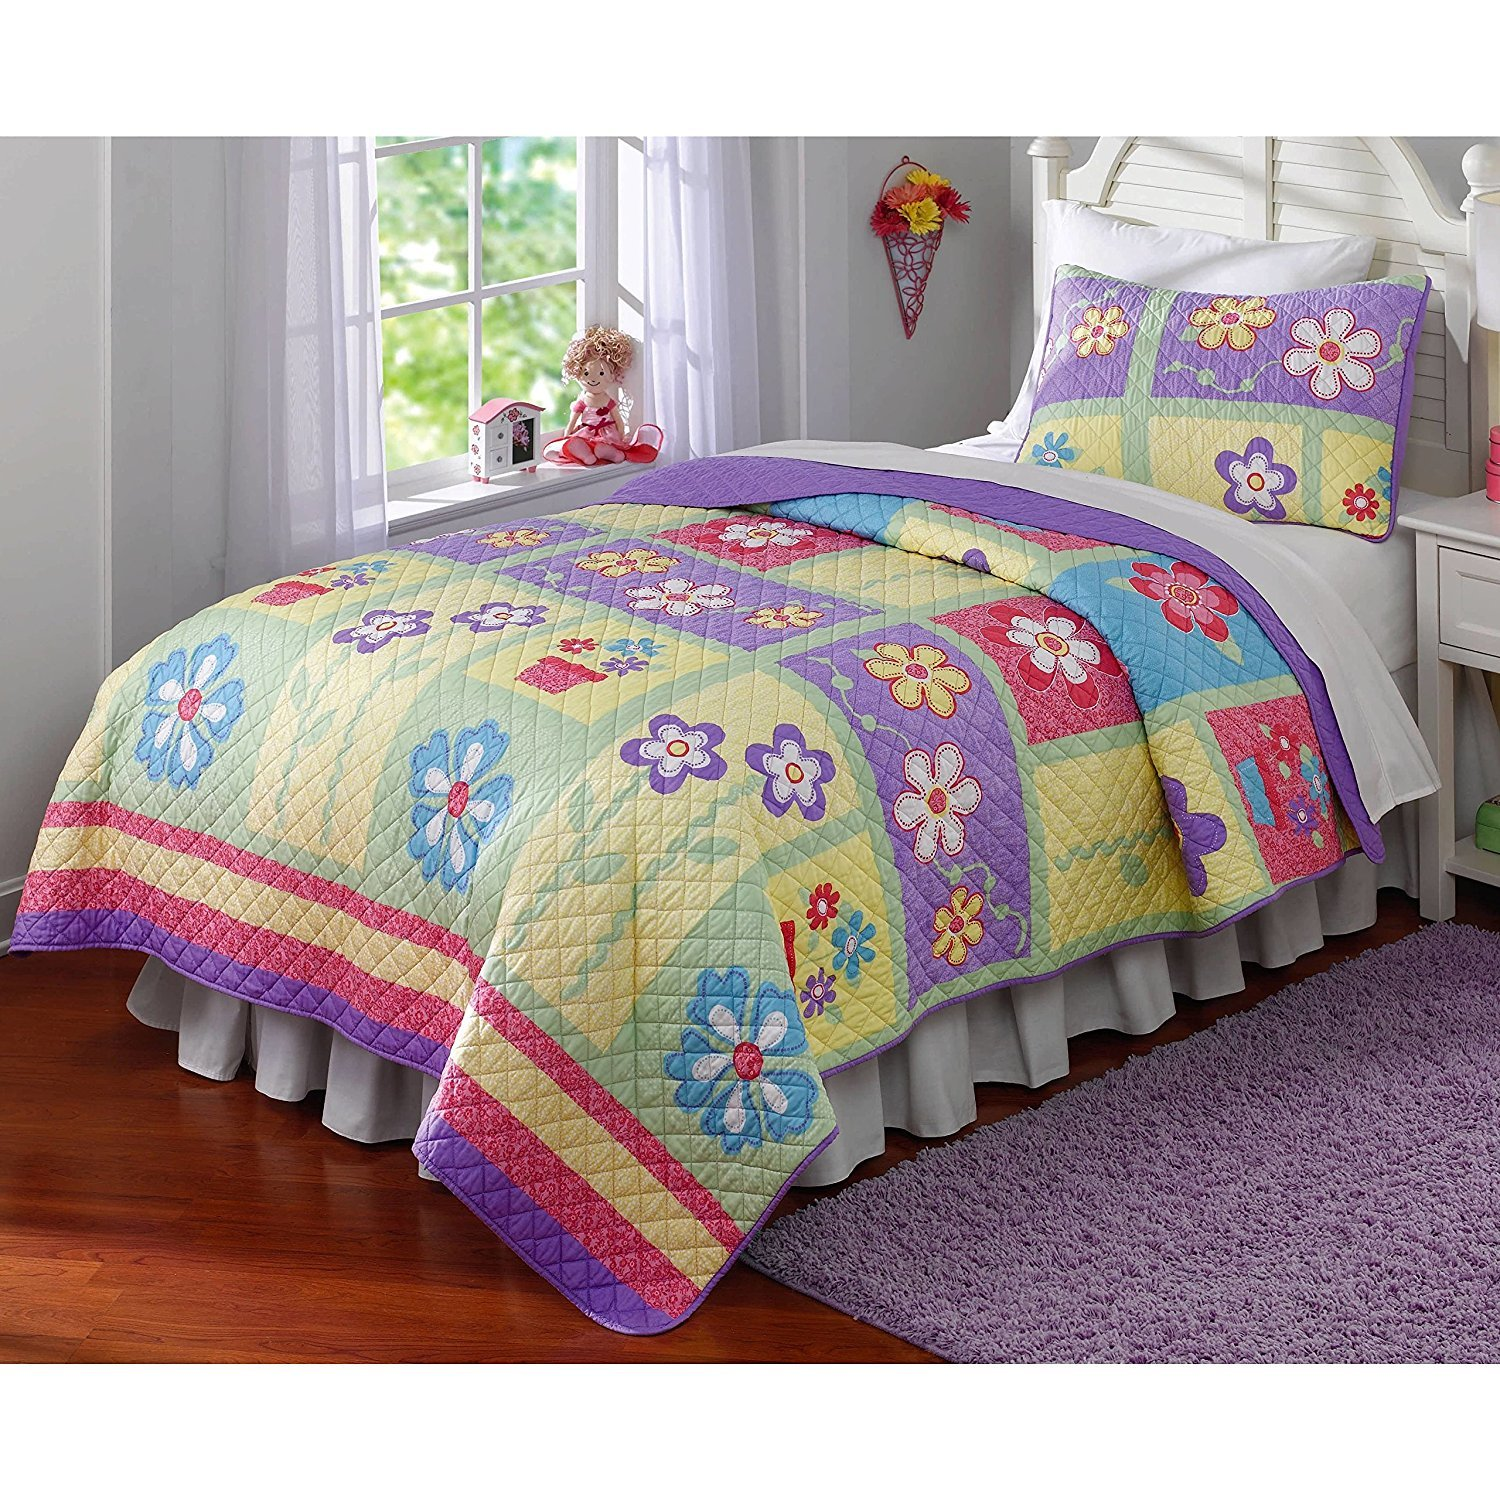 2pc Kids Girls Pink Red Purple Yellow Green Twin Quilt Set, Microfiber, Floral Themed Bedding Flower Bright Daisies Patchwork Cute Adorable Stylish Fun Sweet Pretty Elegant Garden, Cotton